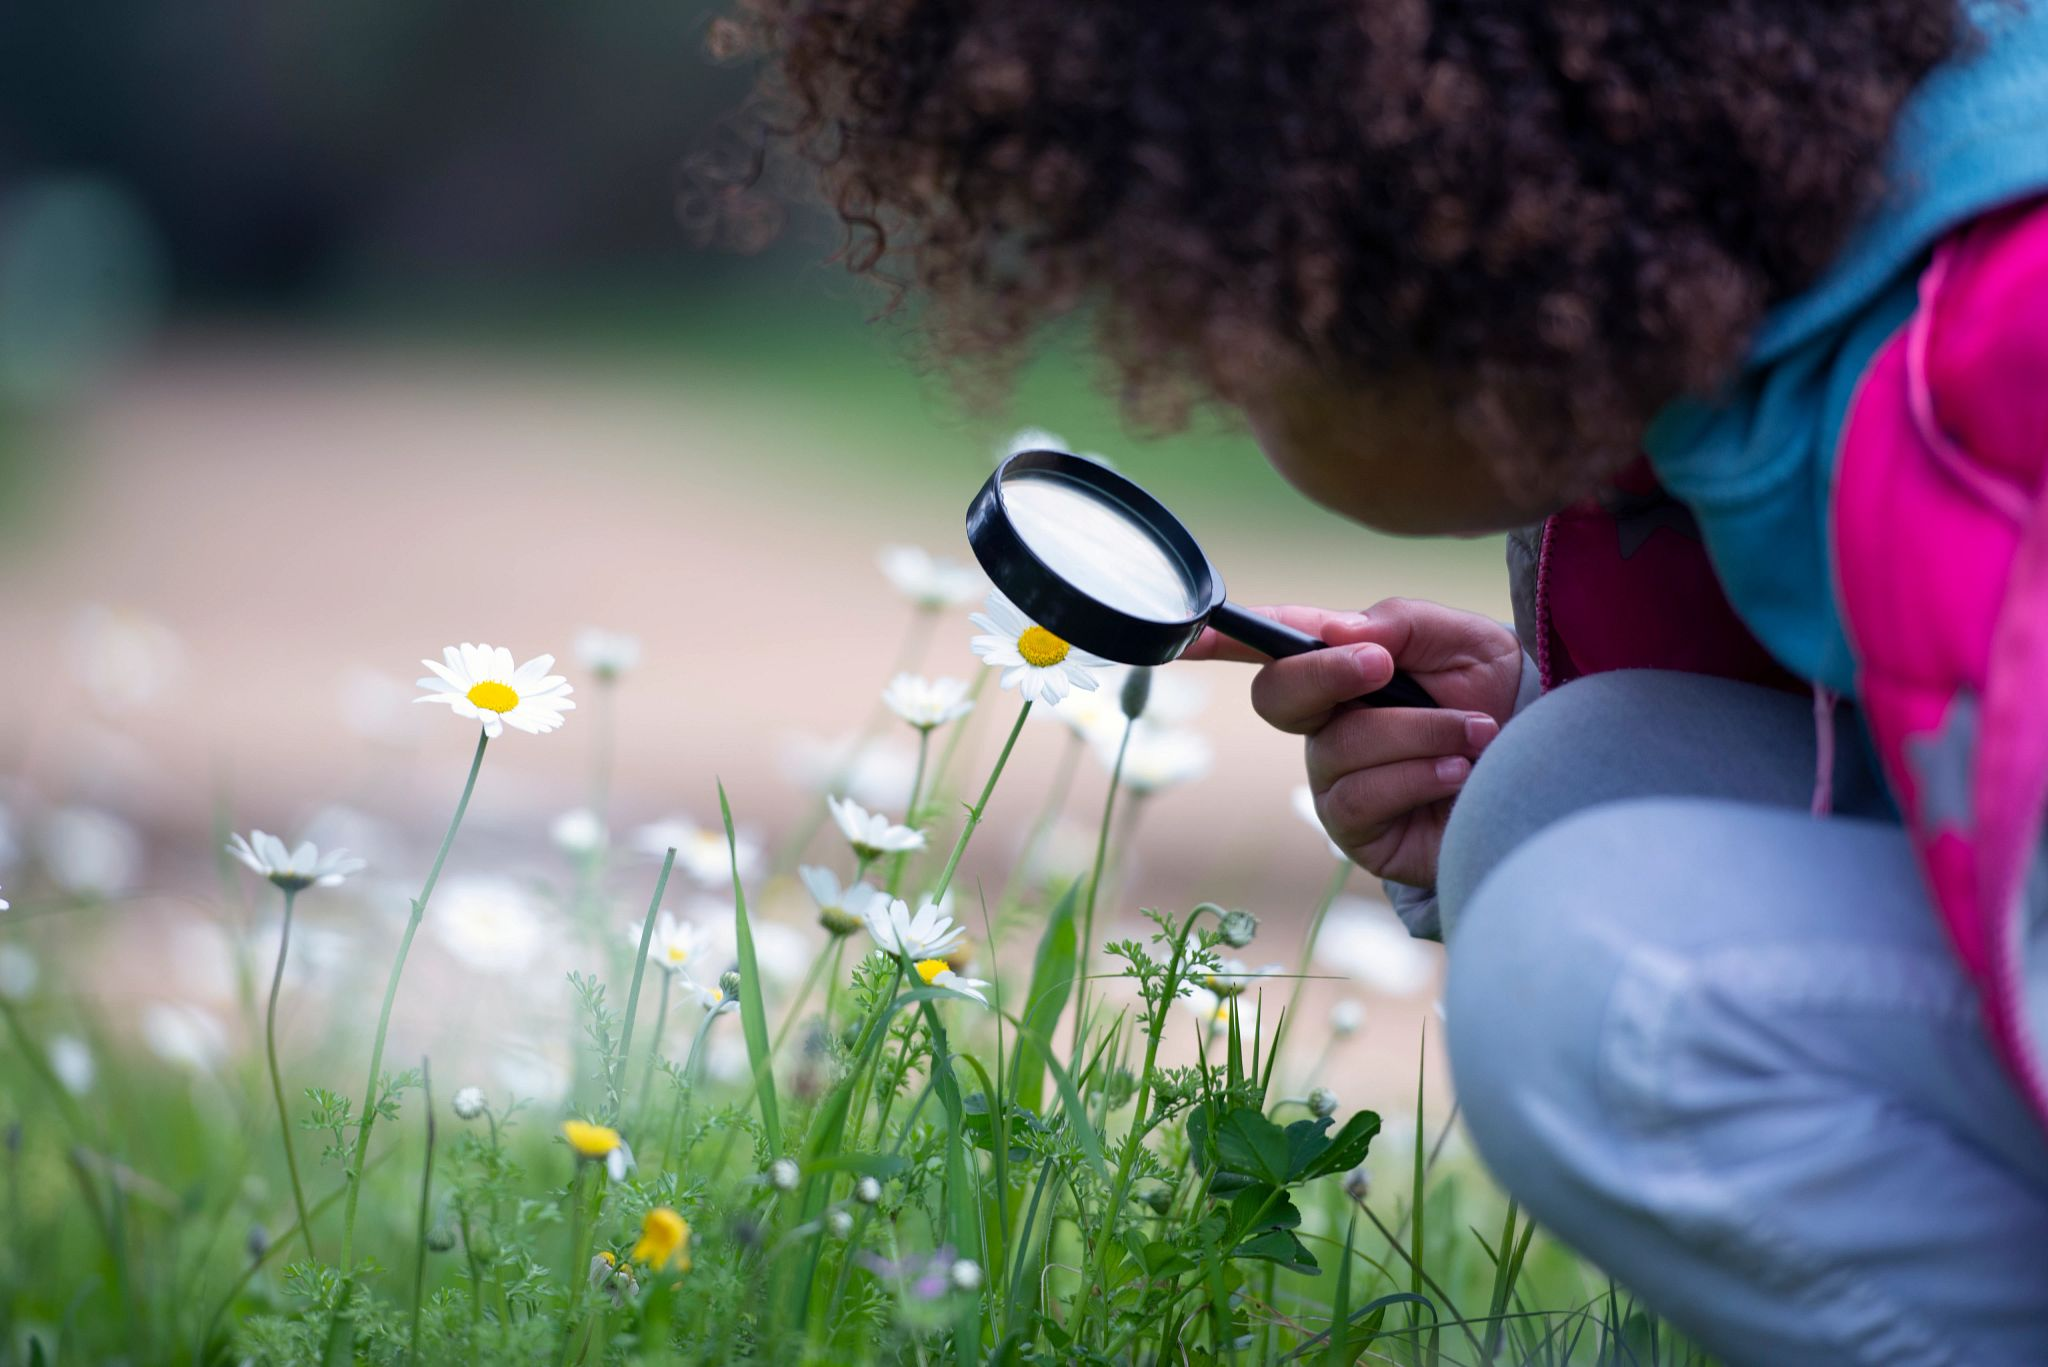 A young girl examining flowers.